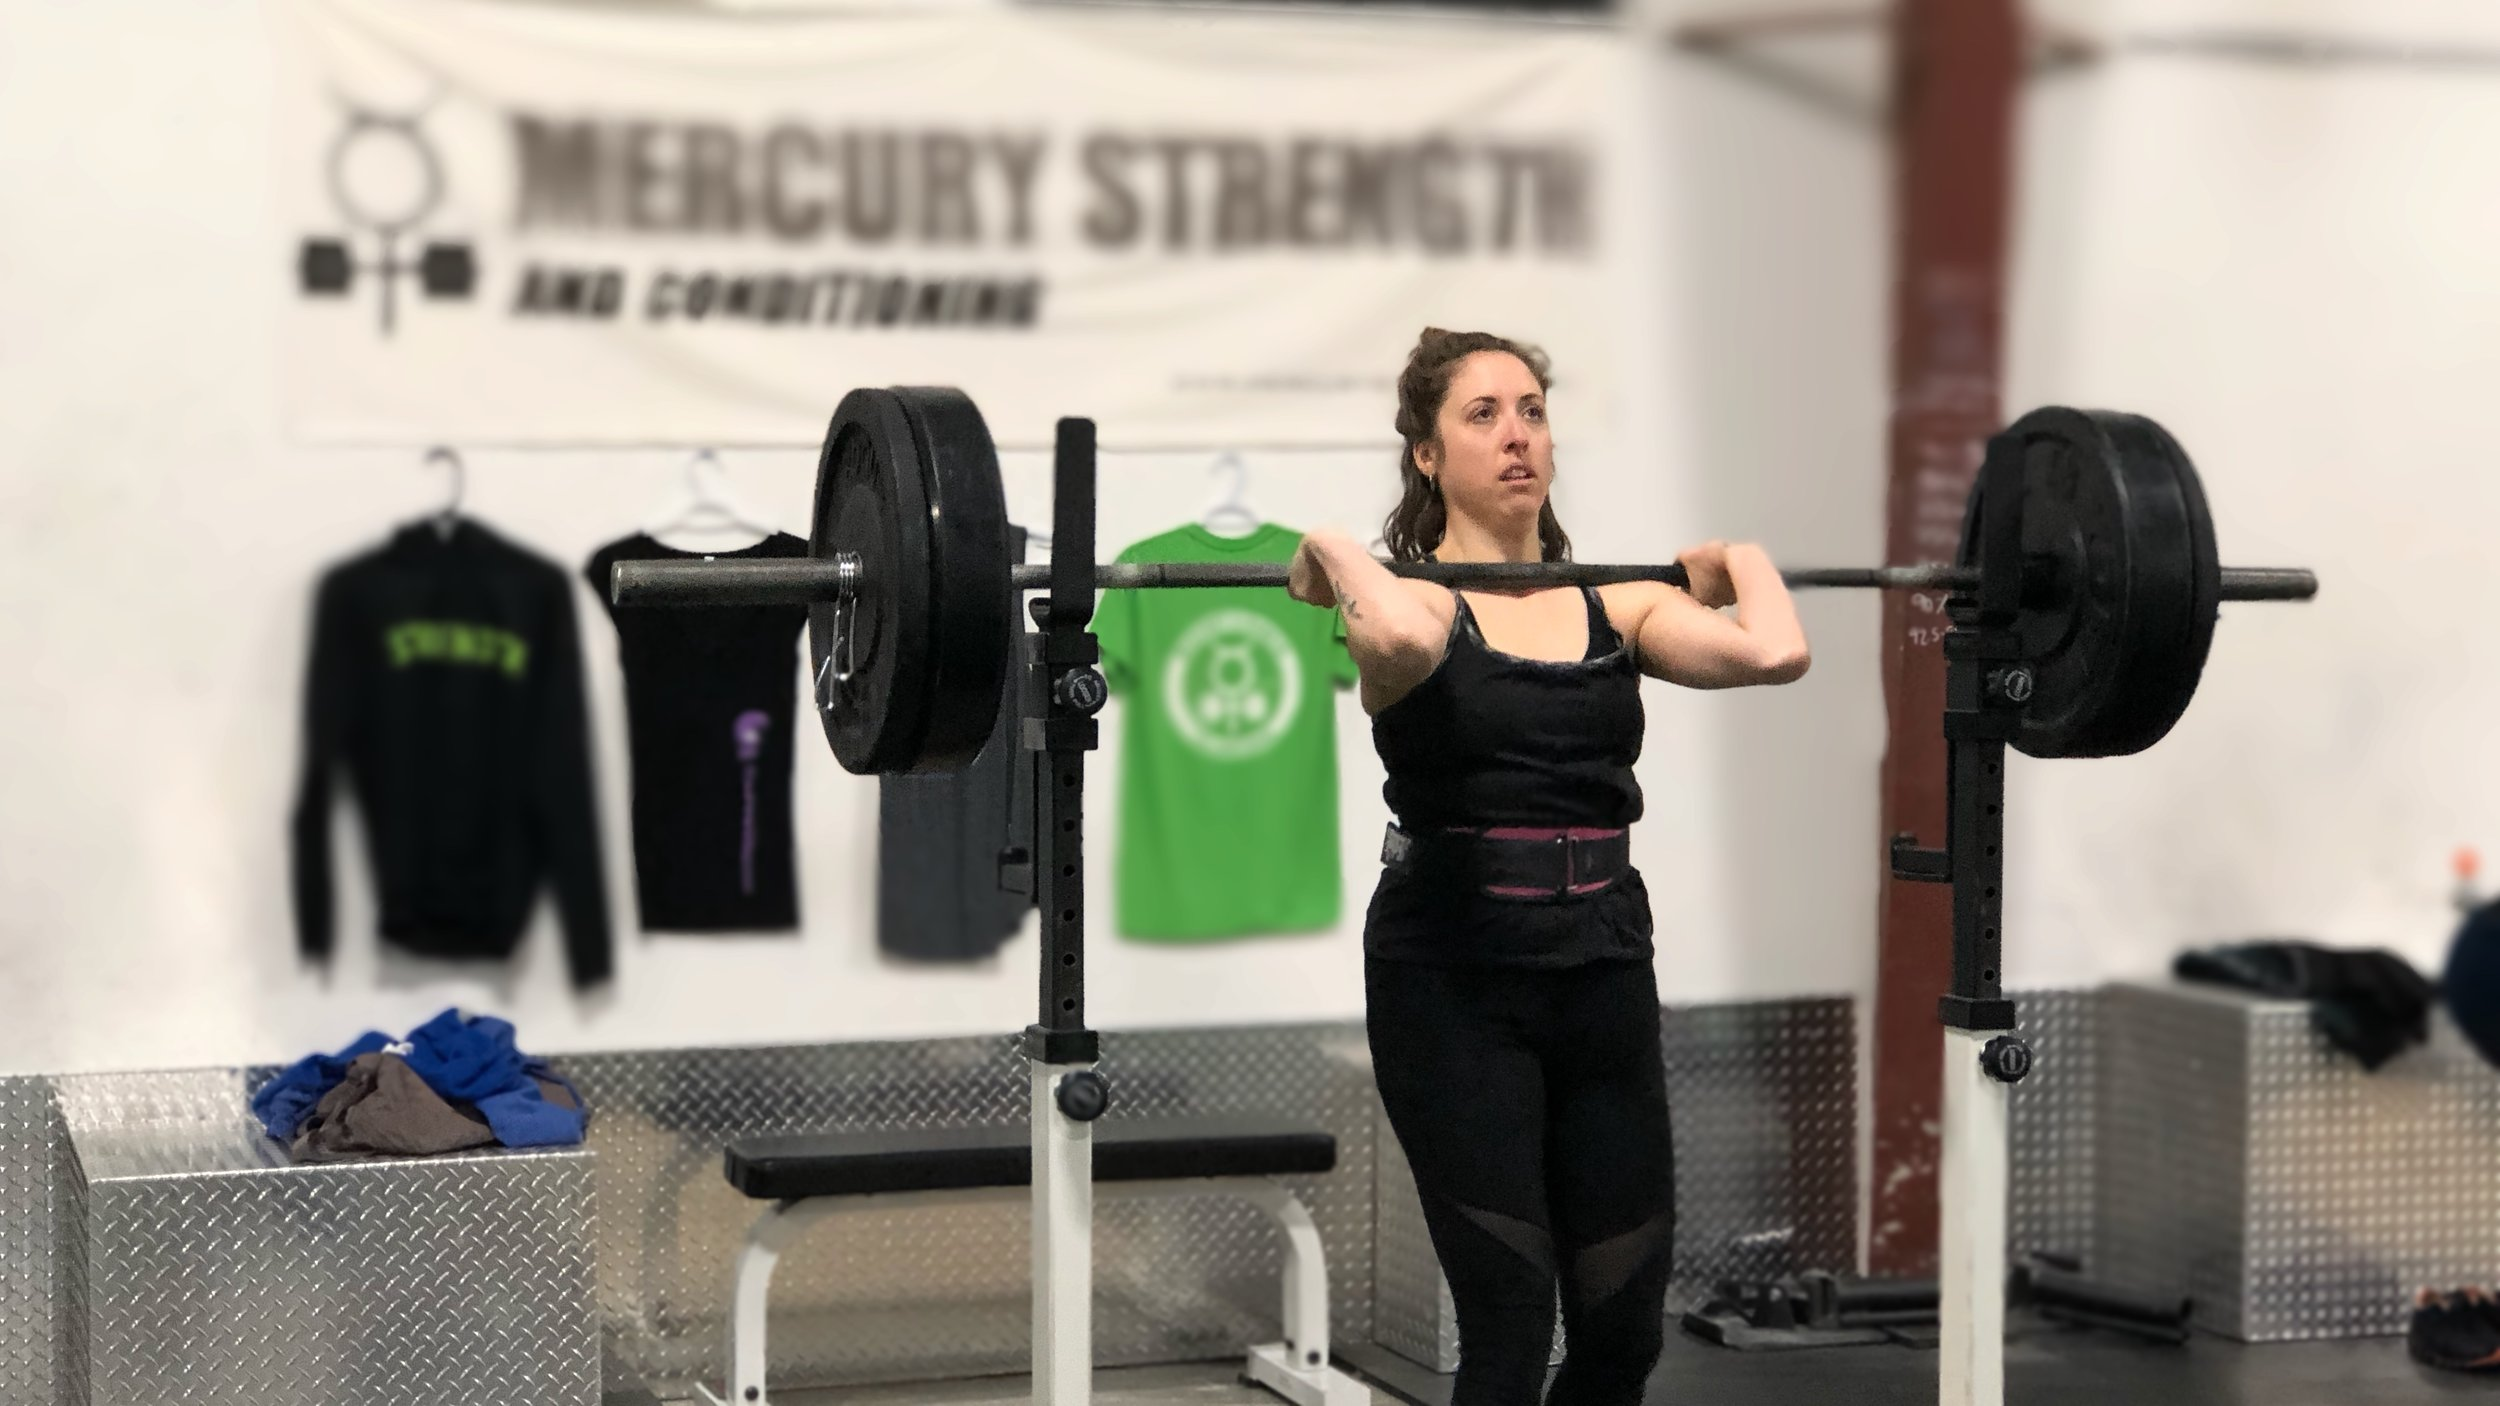 Julianne with the look of determination during front squats